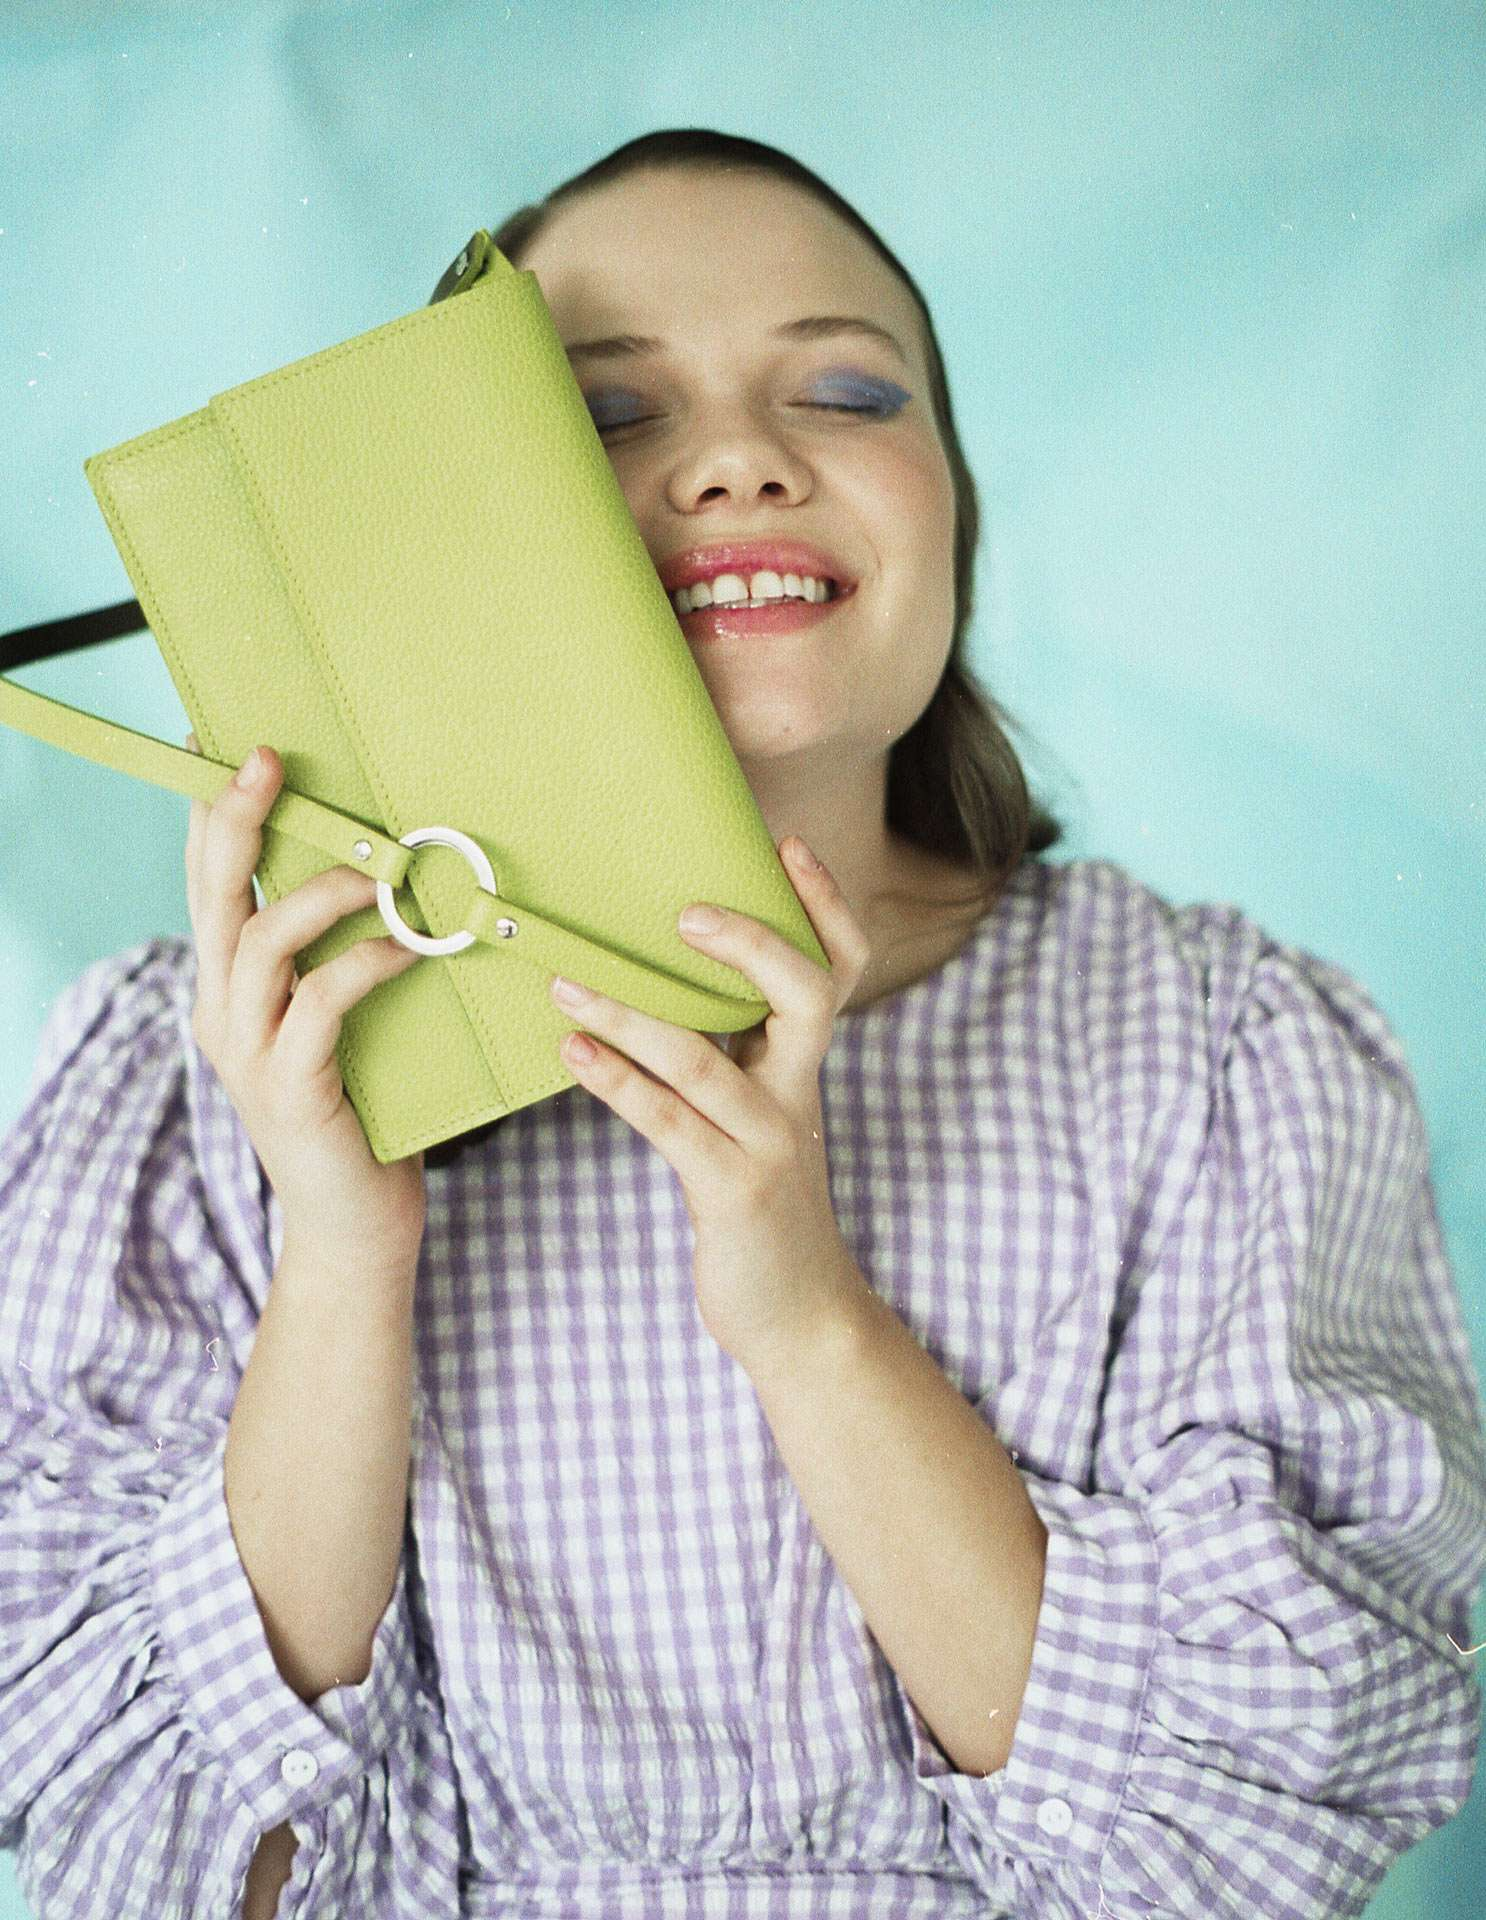 girl smiling holding an almond green purse against her face on light blue background